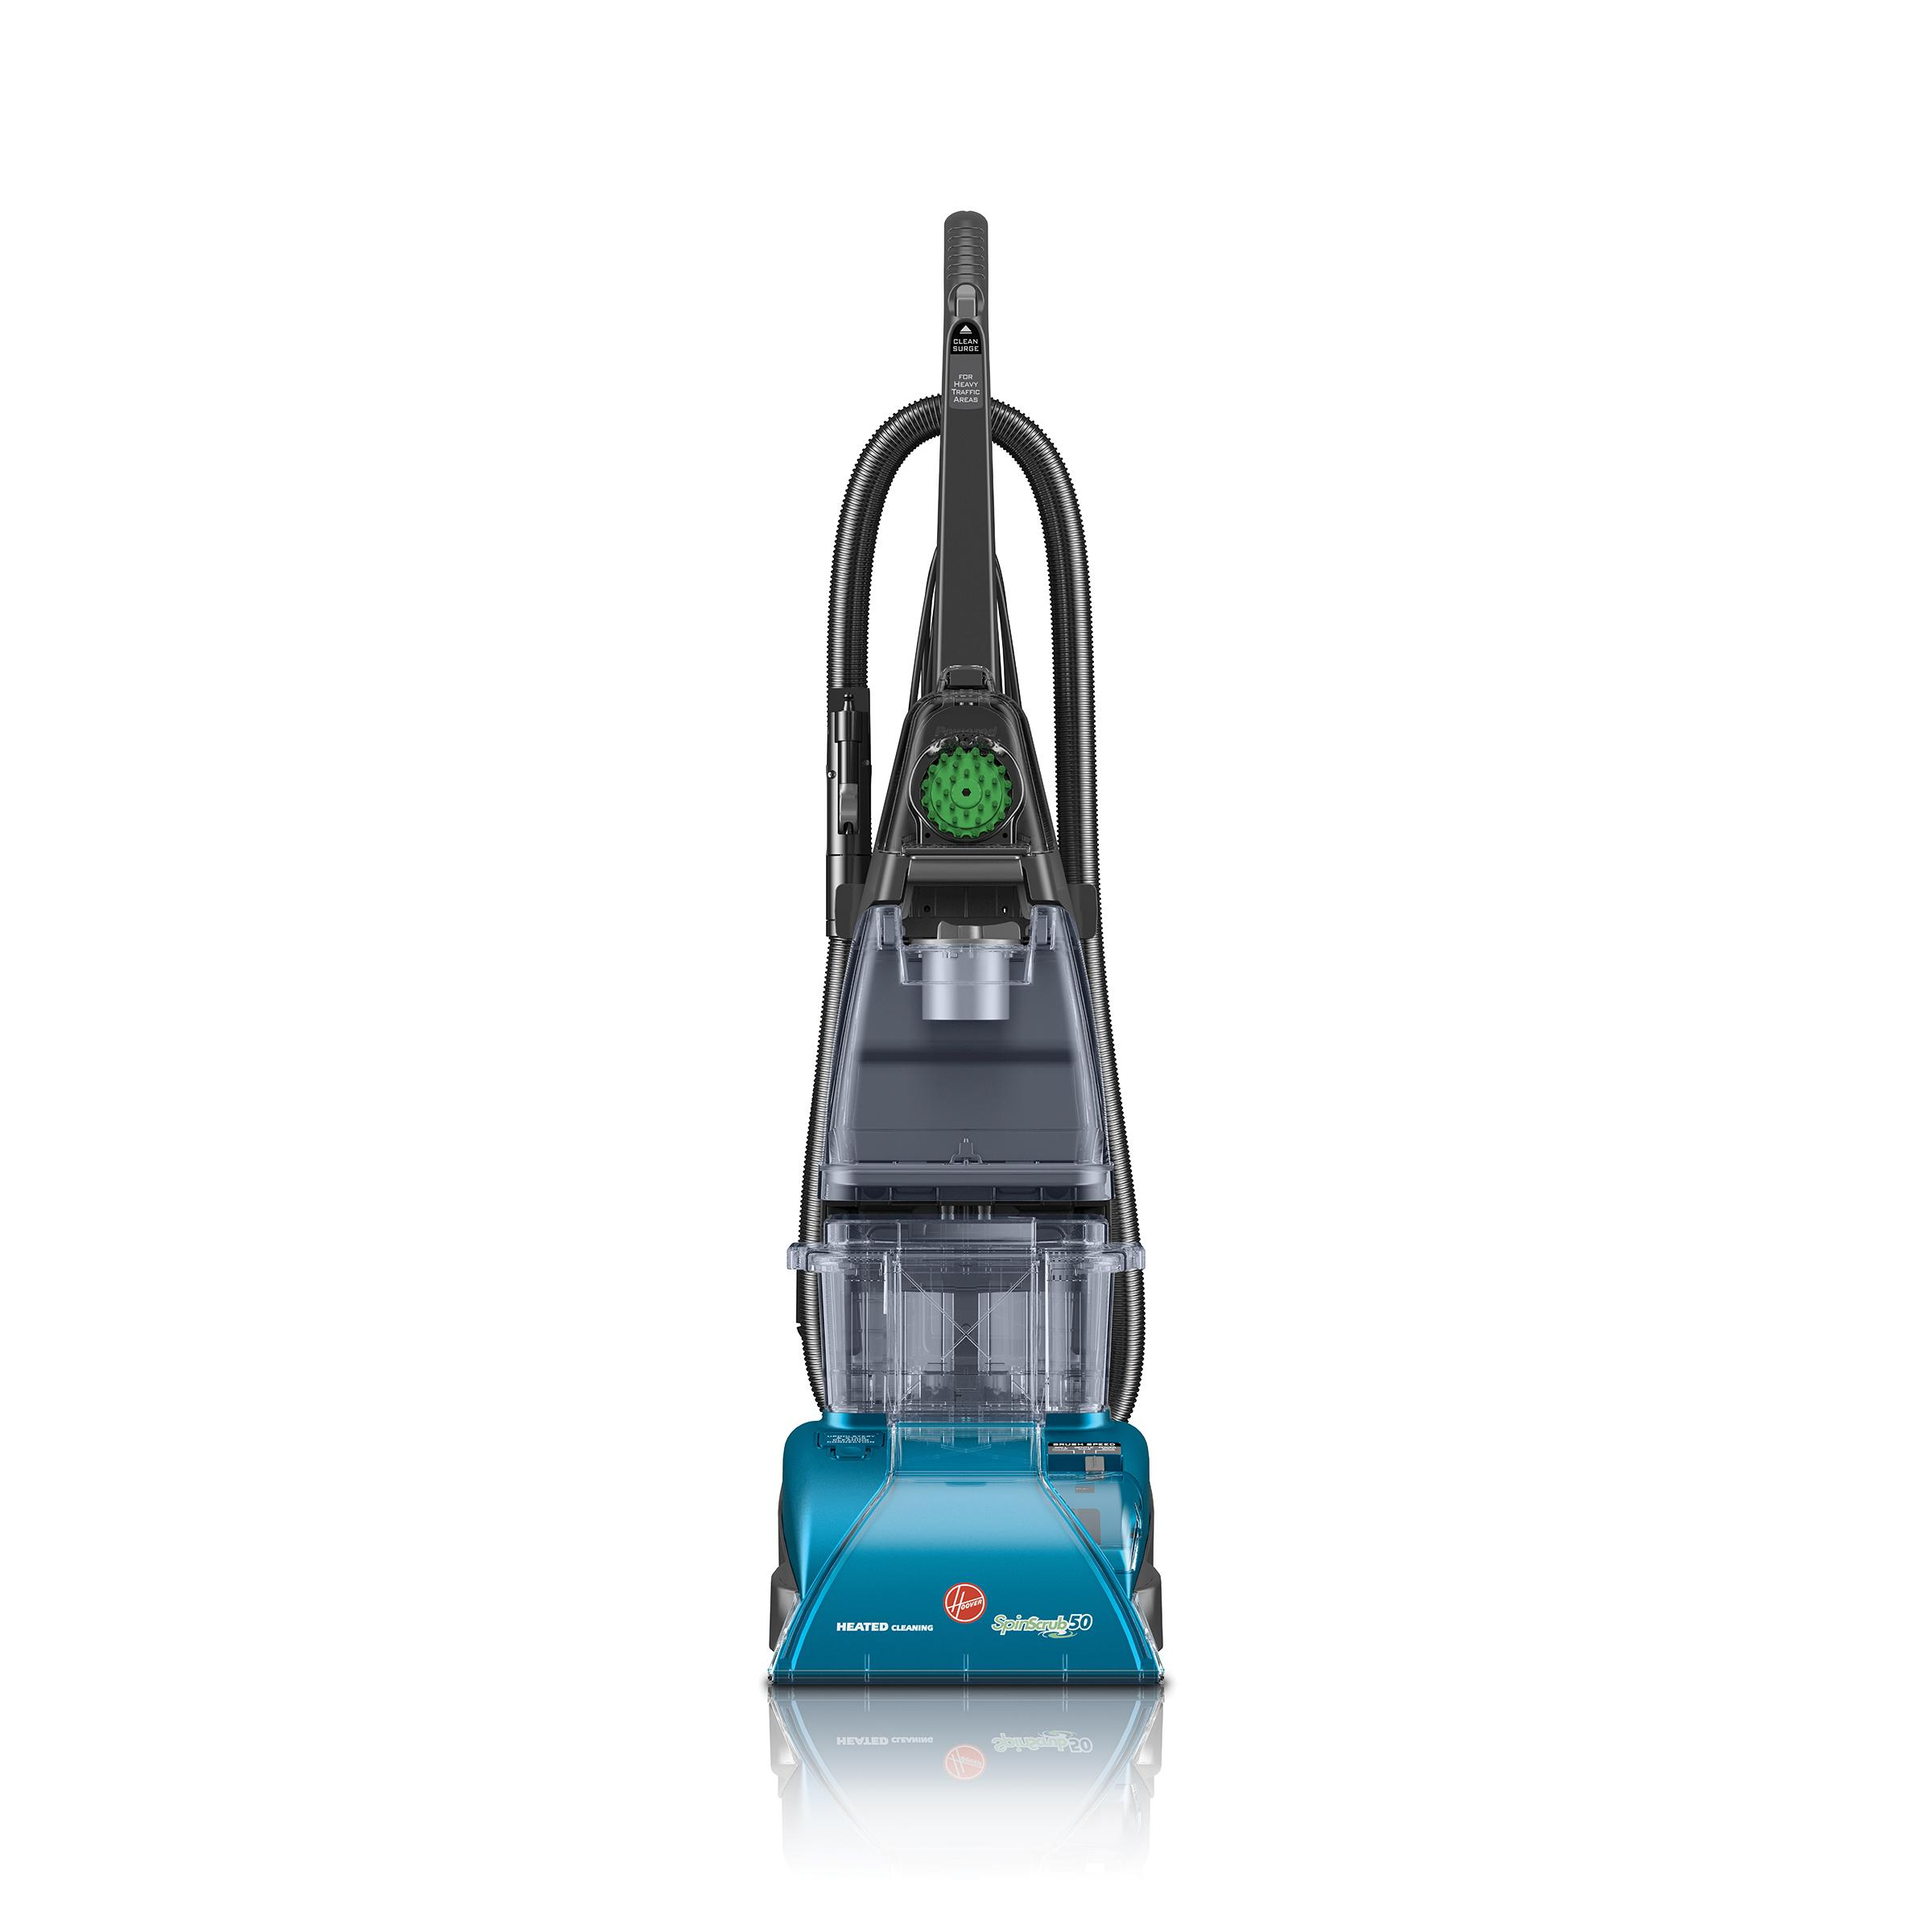 Shop for Carpet Cleaners in Vacuums & Floor Care and choose from a variety of carpet cleaner brands including Hoover, Bissell and Rug Doctor and save. Save money. Live better.